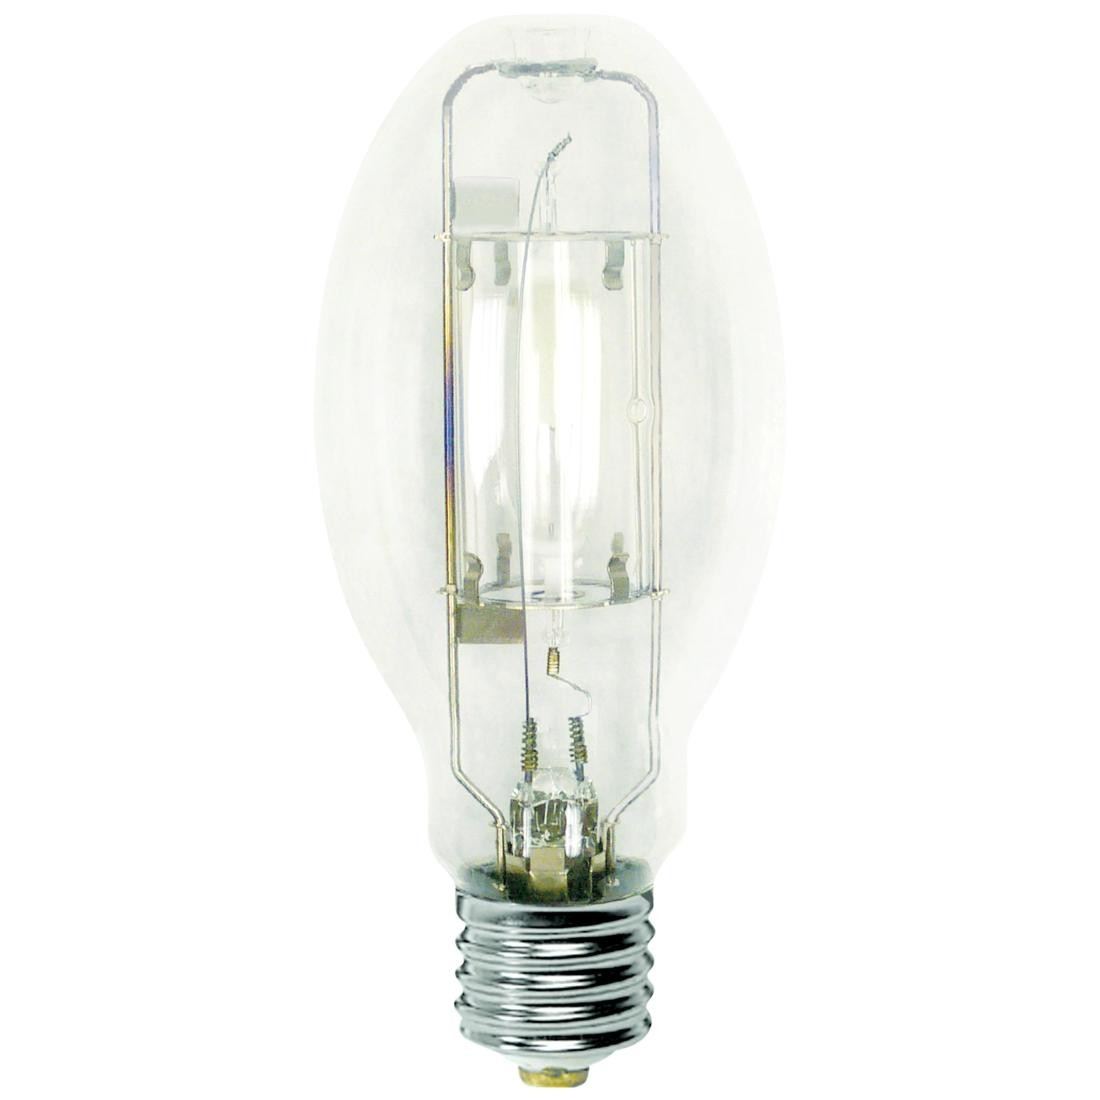 Athalon MP175/BU/ATH 175 Watt Ed28 Probe Start Metal Halide